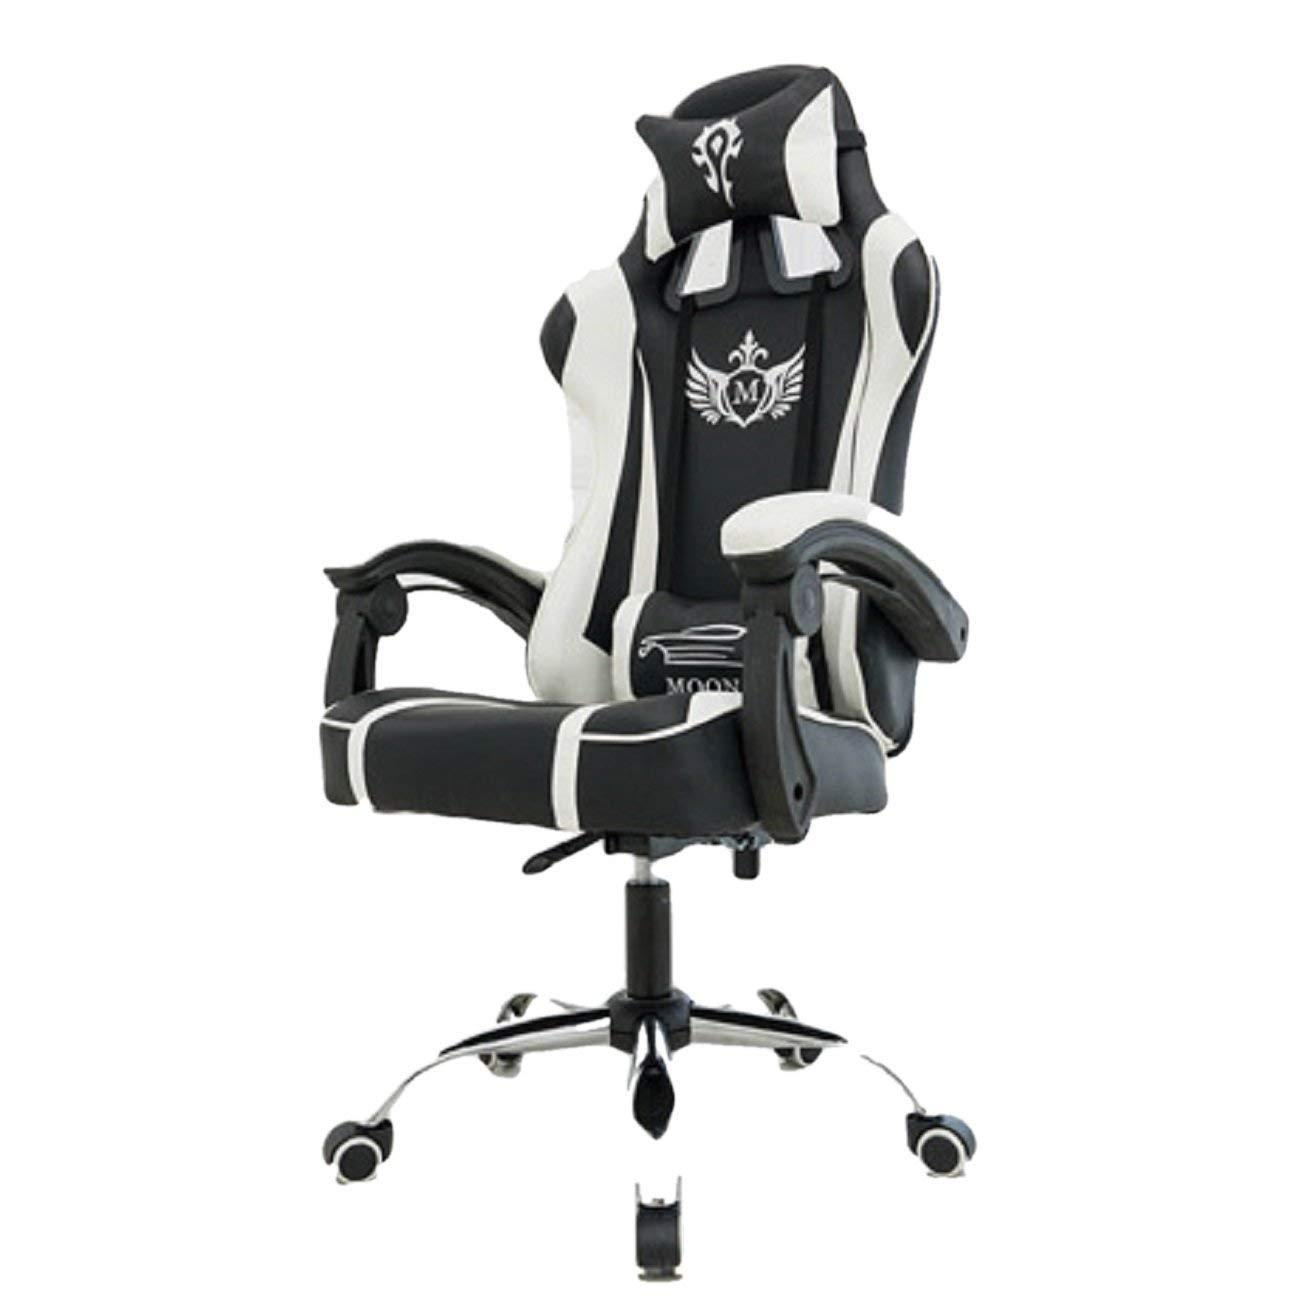 office chair ergonomic cushion dining room chairs with arms cheap for find get quotations moonstar gaming computer desk 150 degree angle adjustable waist head